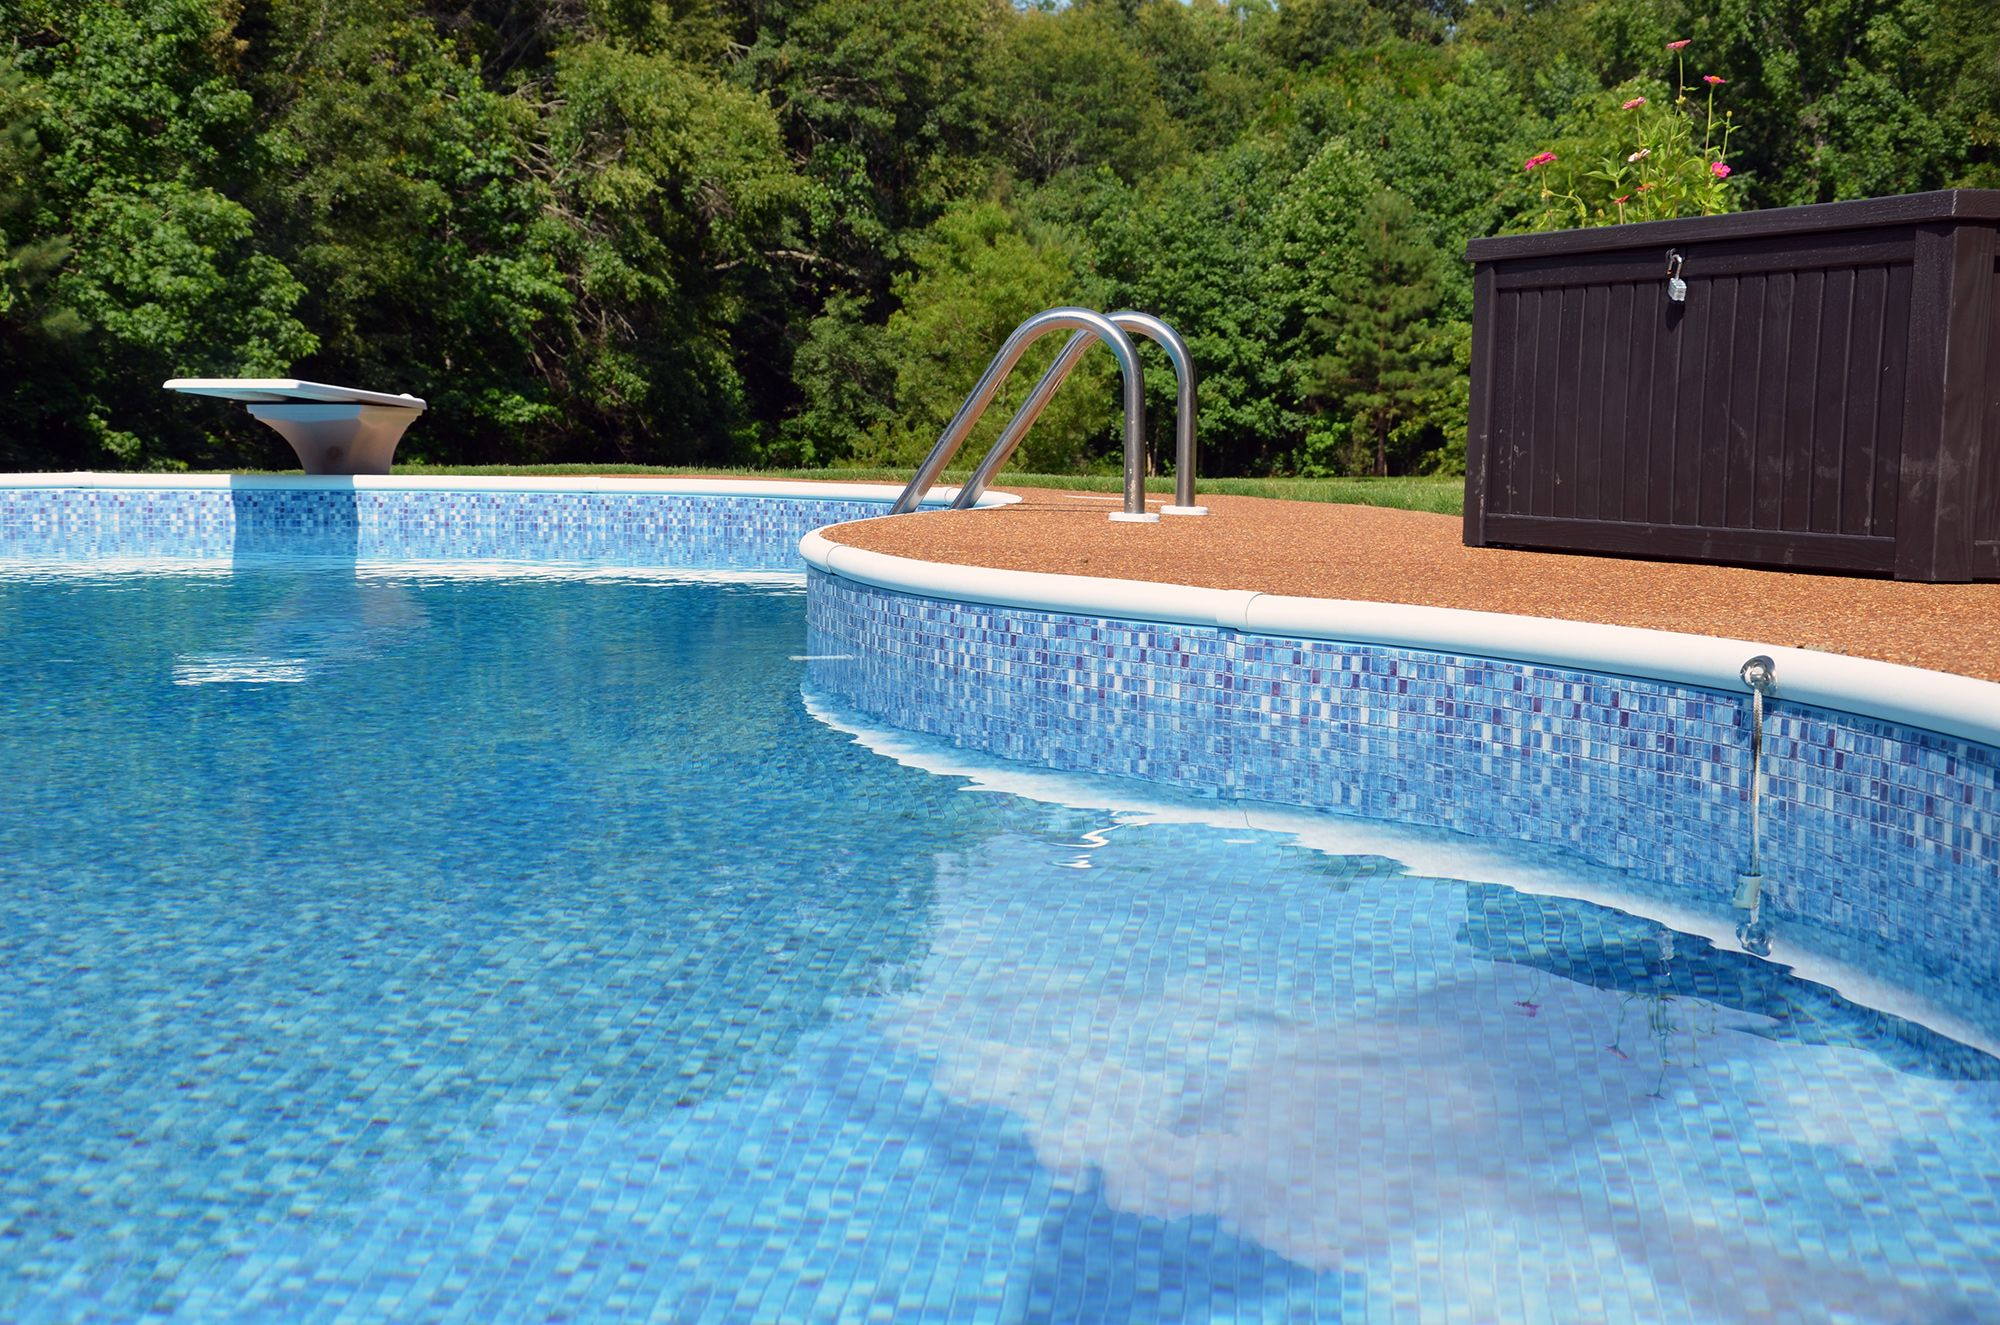 Renovated pools memphis pool outdoor landscape ideas for Garden pool mats